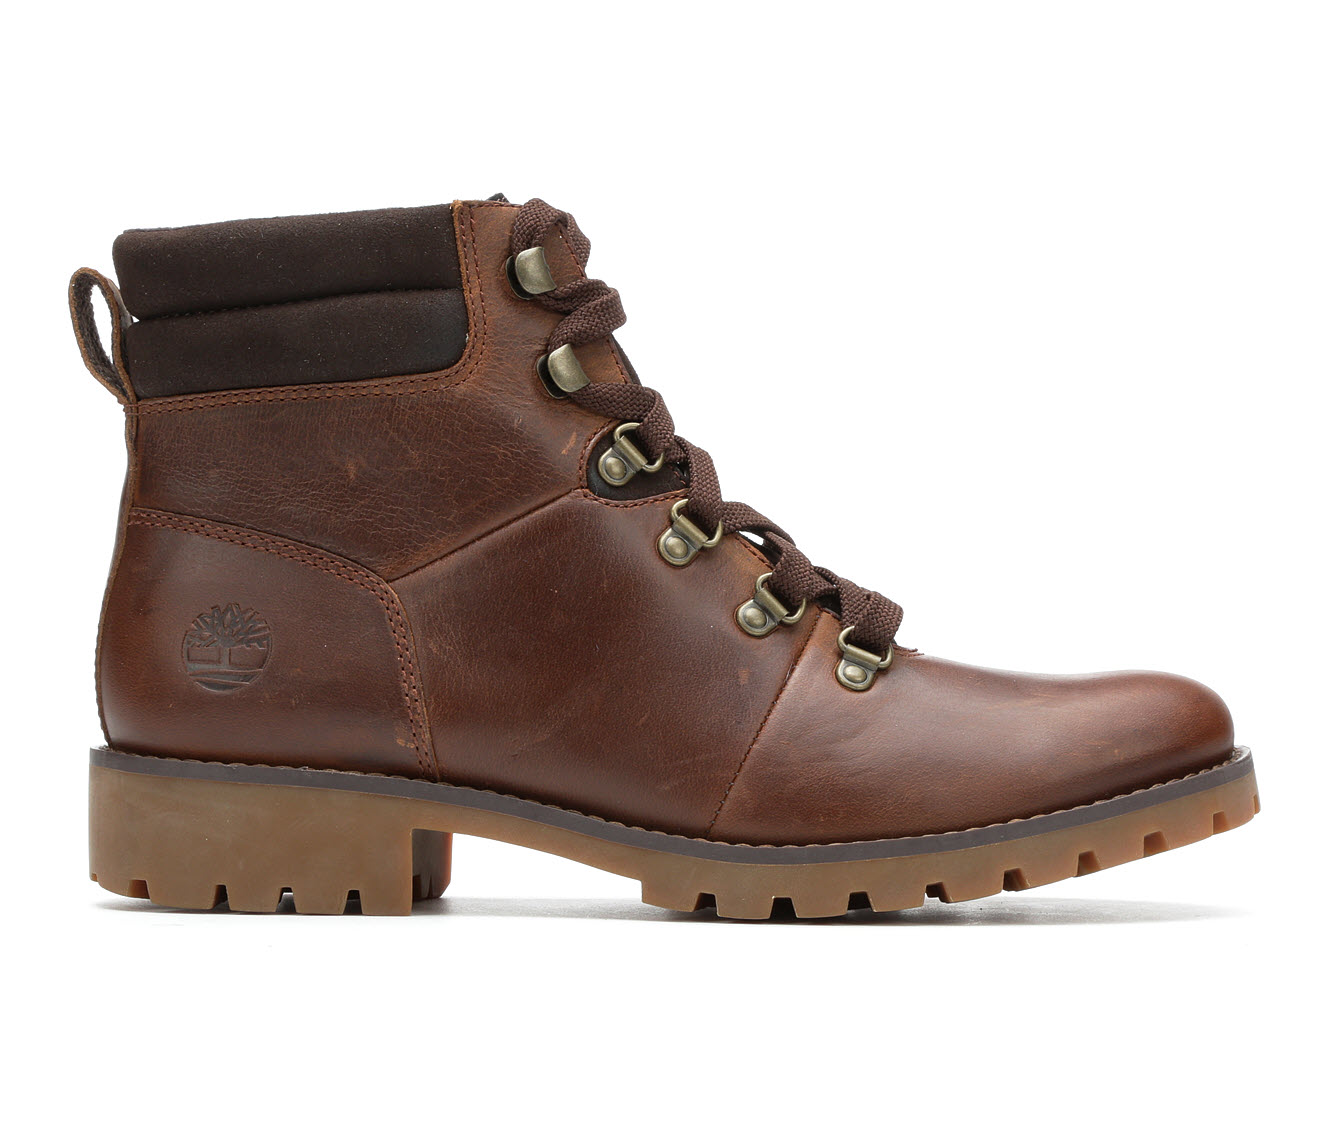 Timberland Ellendale Hiker Women's Boots (Brown - Leather)